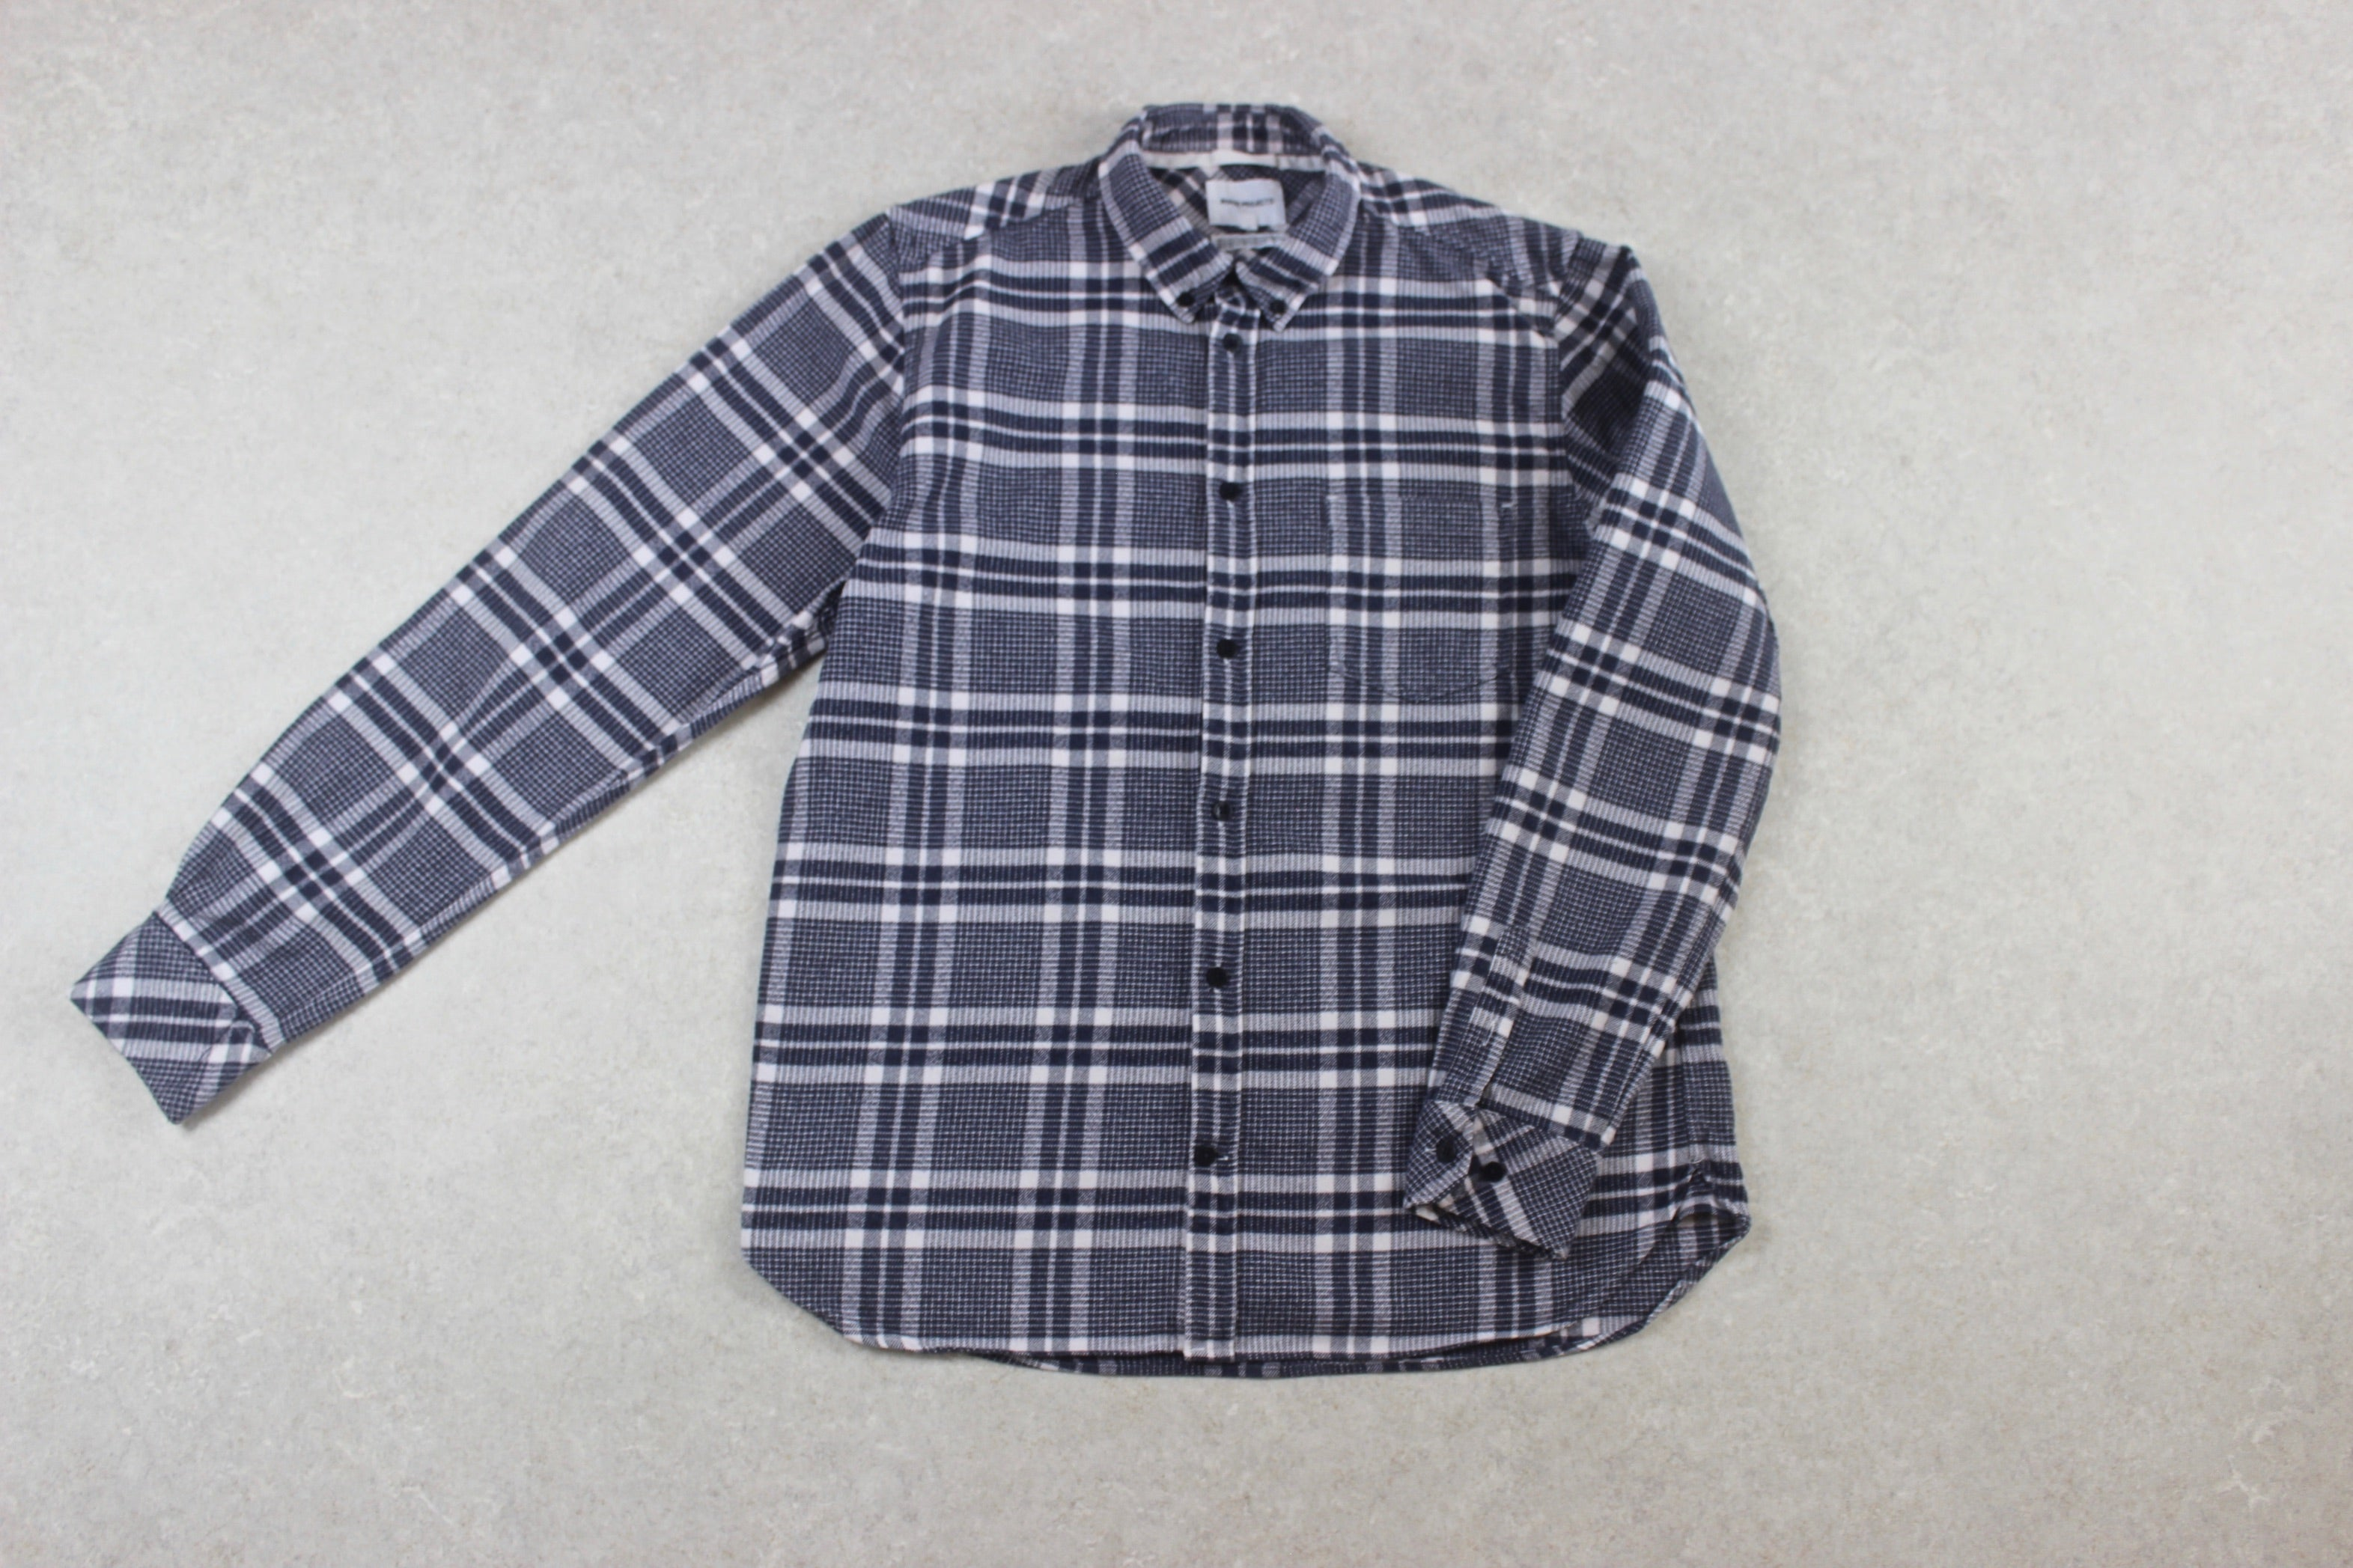 Norse Projects - Flannel Shirt - Navy Blue/White Check - Medium